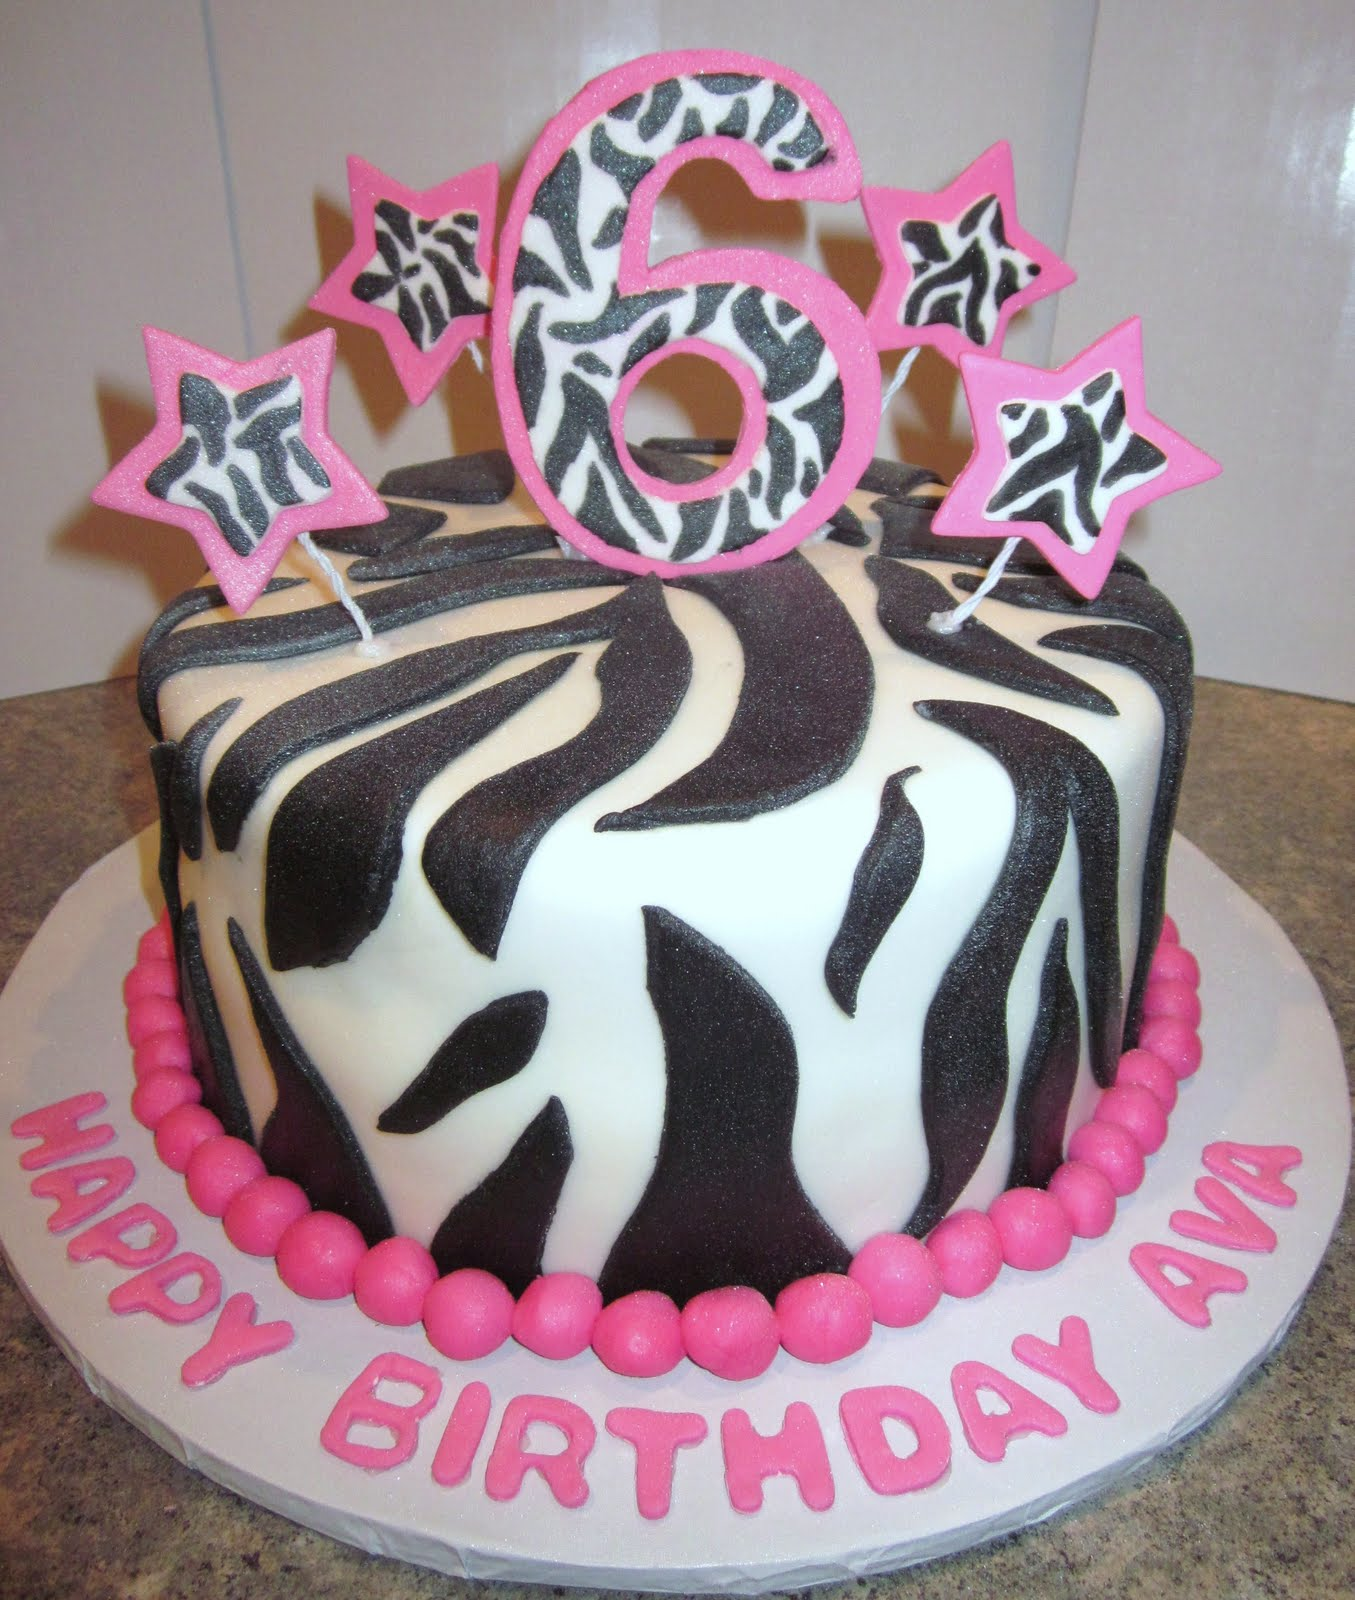 My Cakes And Treats: Kids B-day Cakes